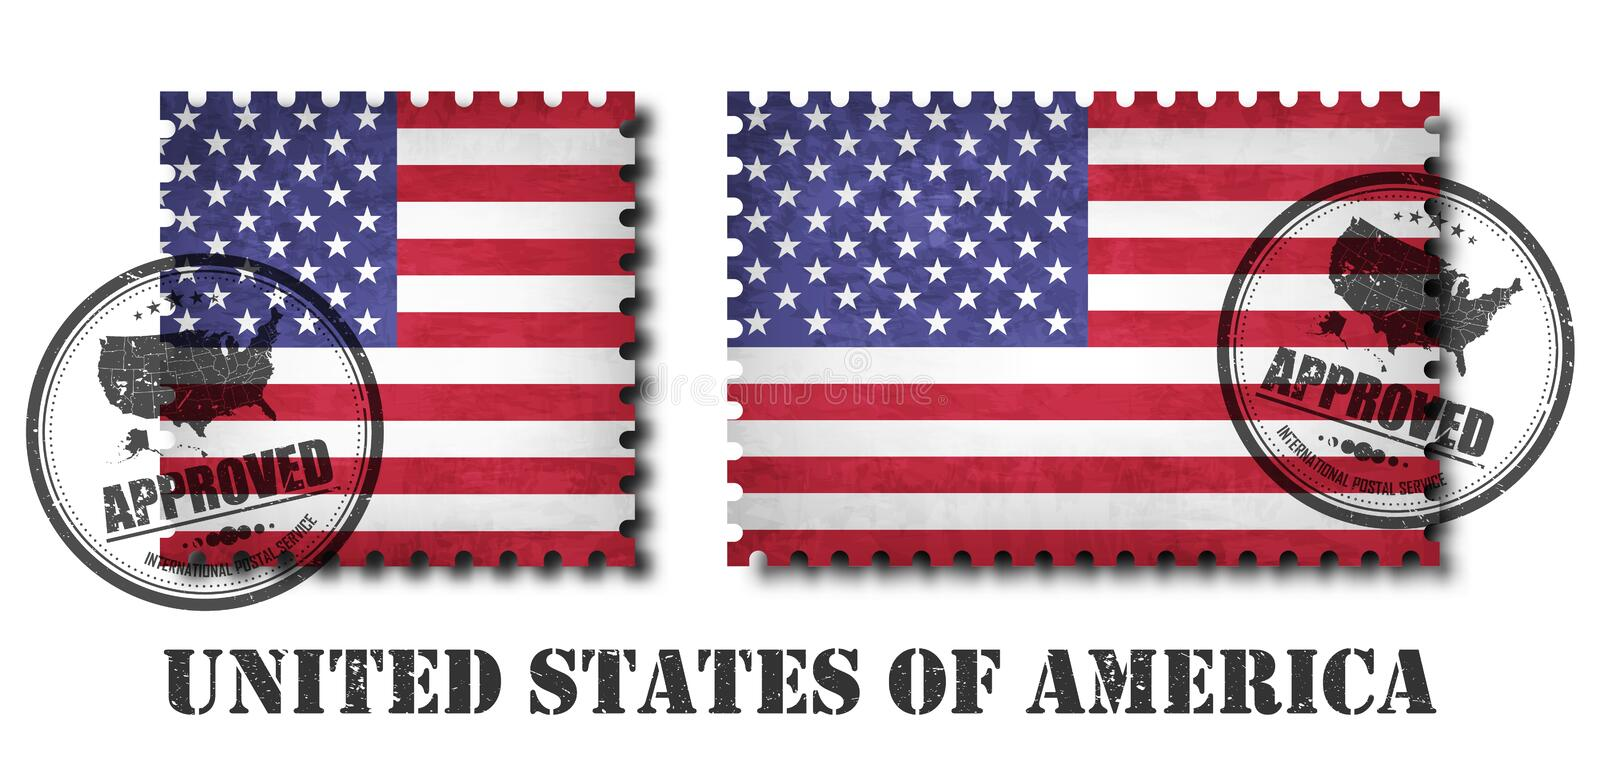 America or american flag pattern postage stamp with grunge old scratch texture and affix a seal on isolated background . Black col vector illustration